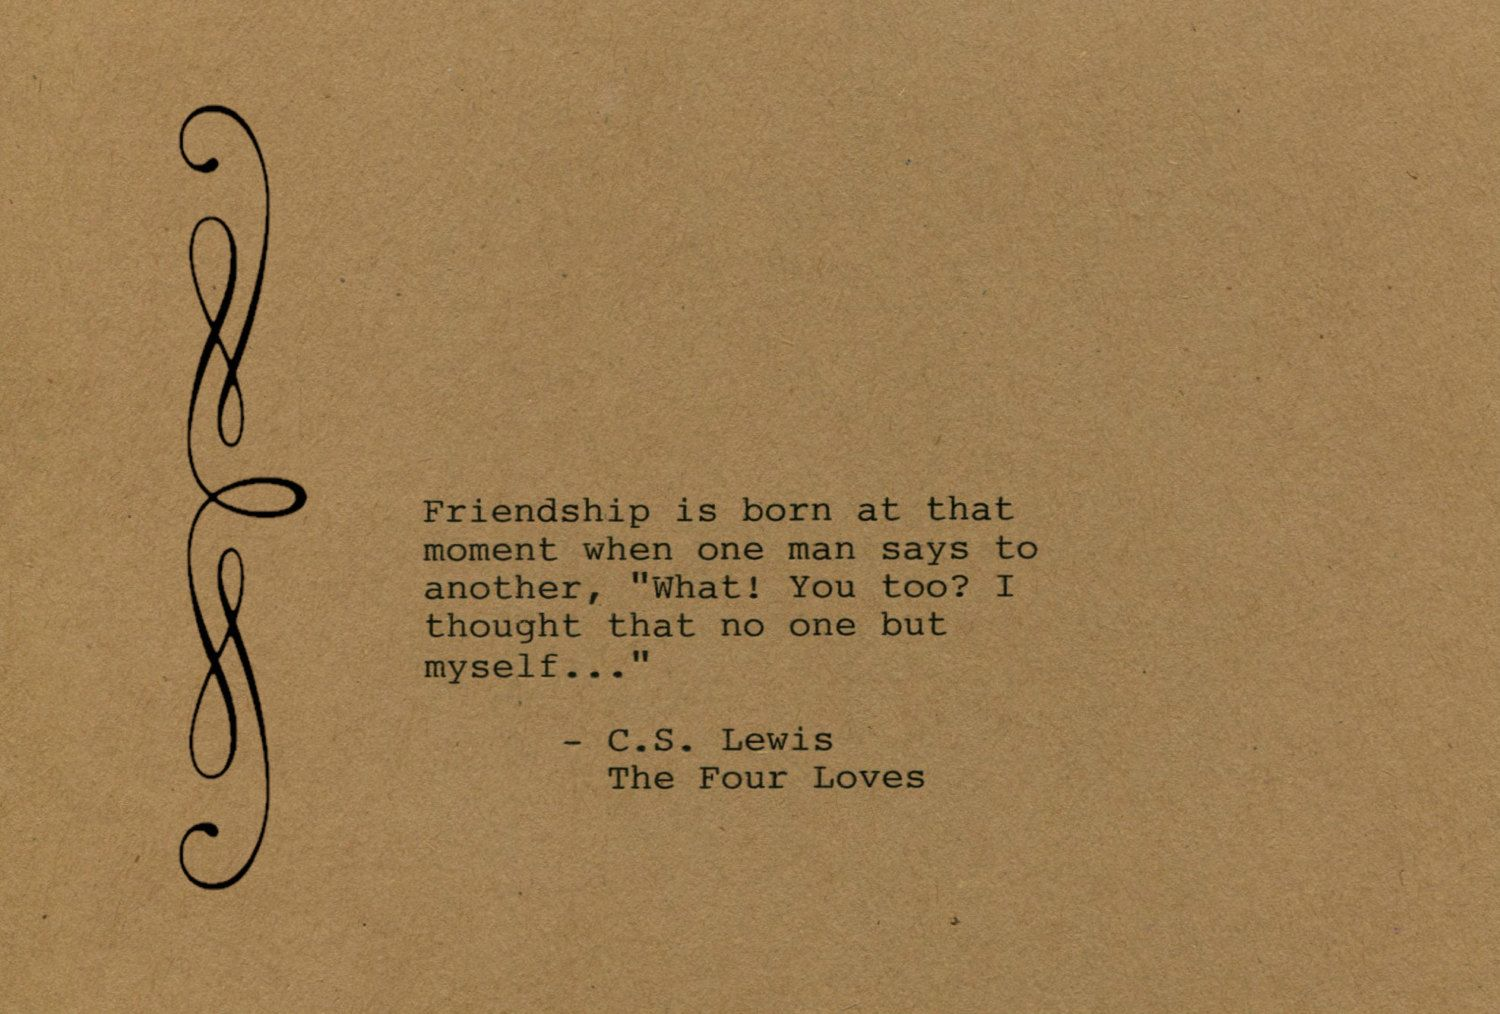 One Line Art Quotes : C s lewis quote made on typewriter art wall the four